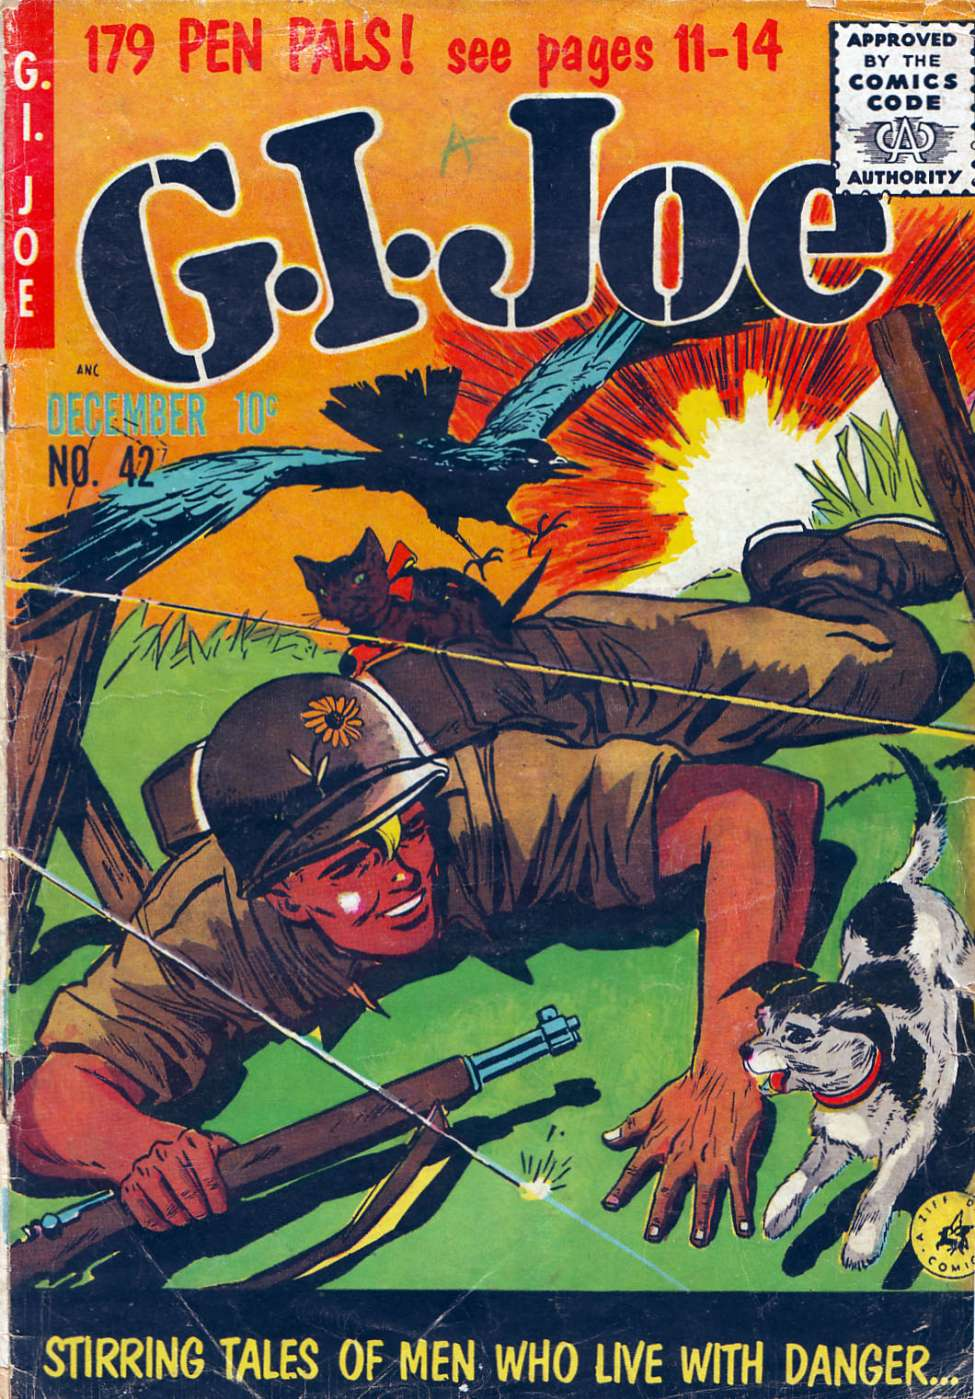 Comic Book Cover For G.I. Joe #42